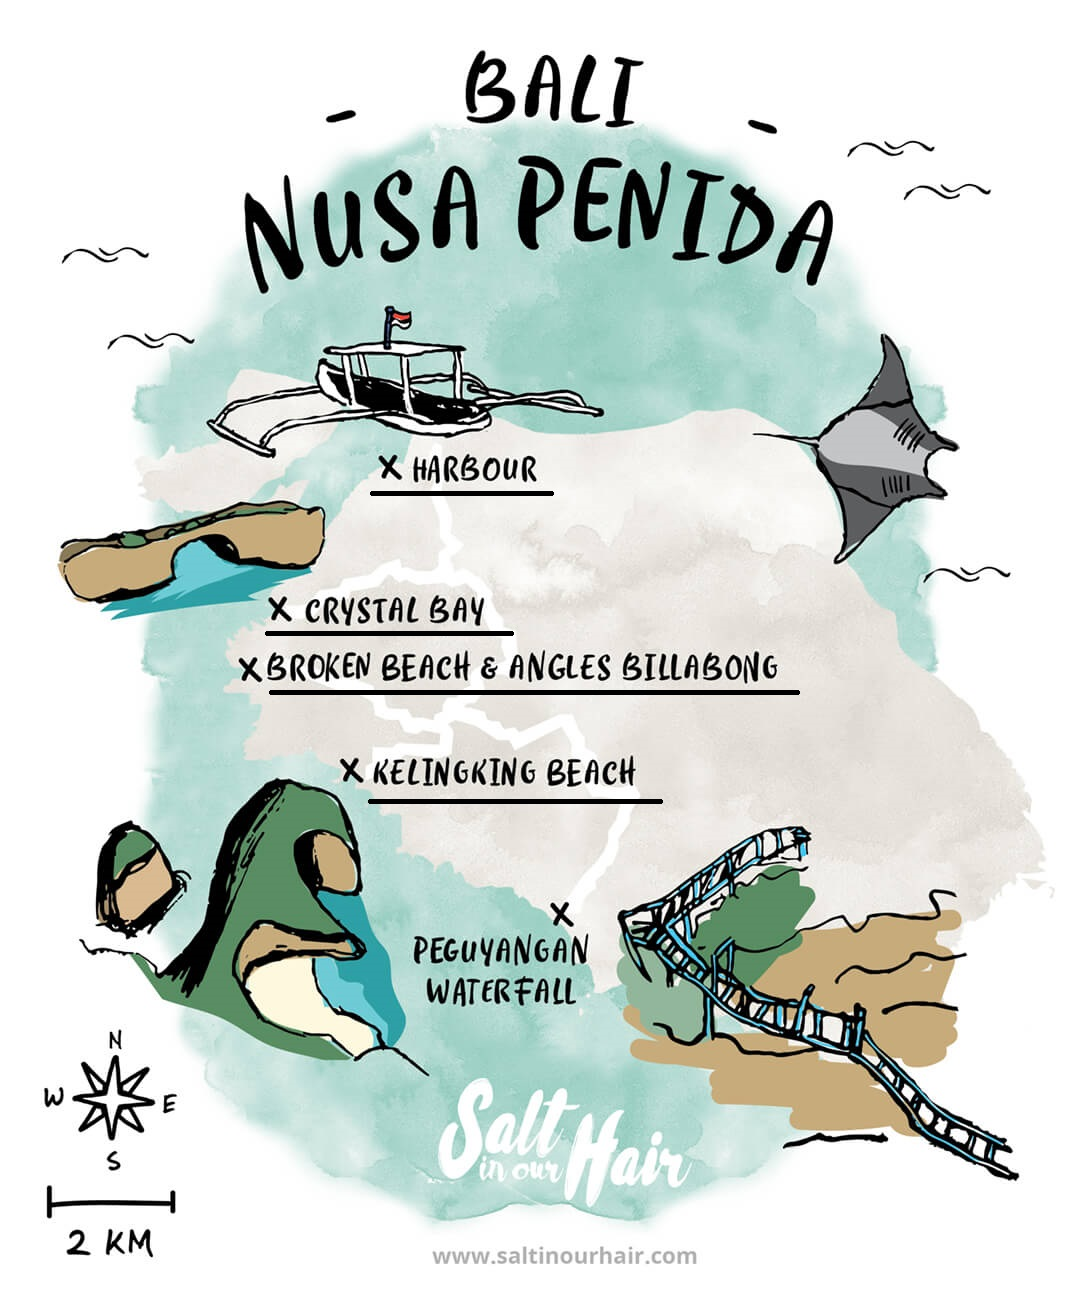 nusa-penida-tour-route-map